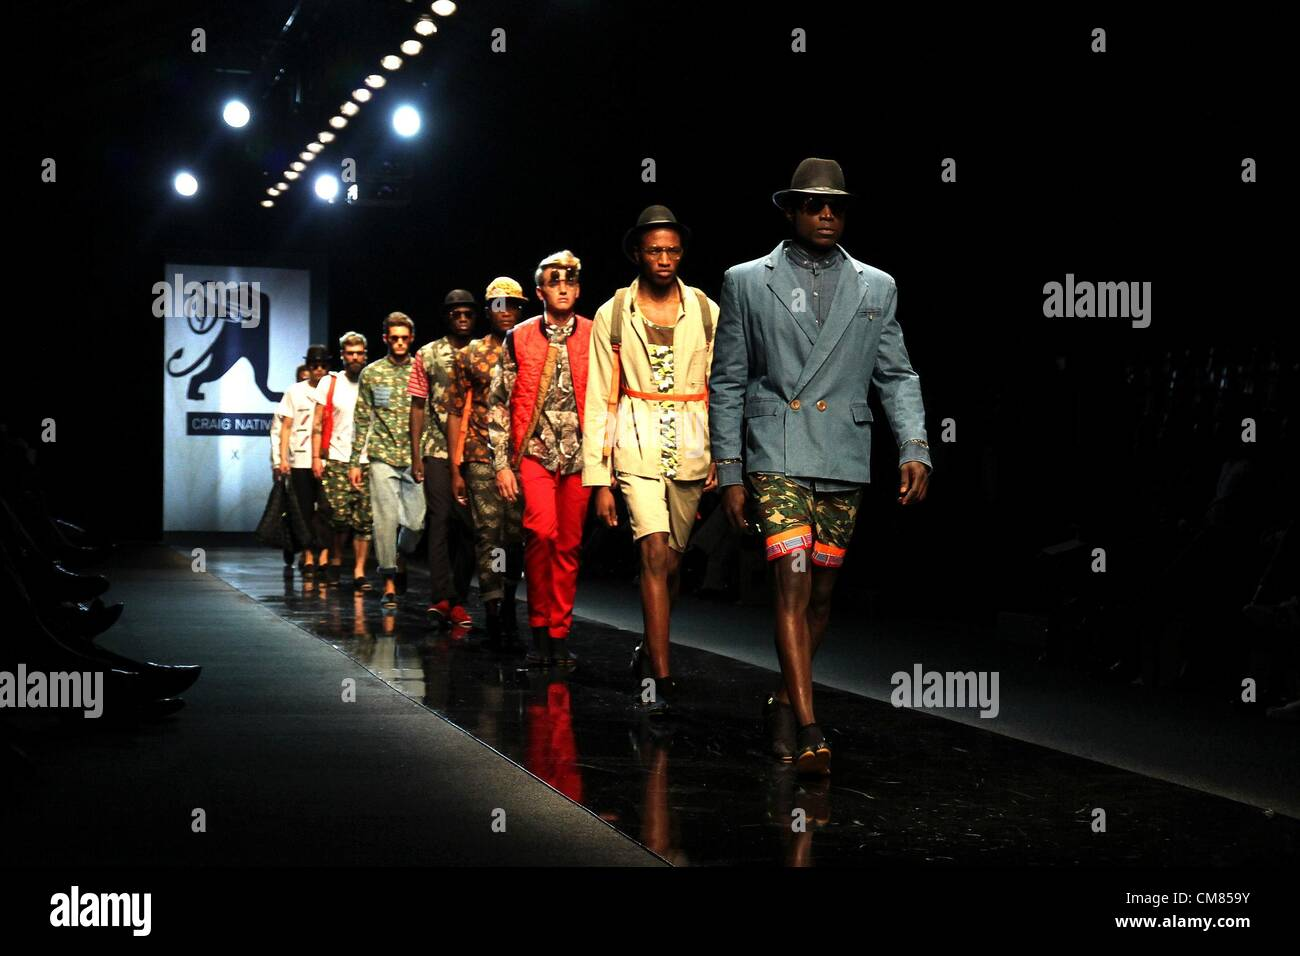 Johannesburg South Africa October 25 Male Models Showcase Designs Stock Photo Alamy